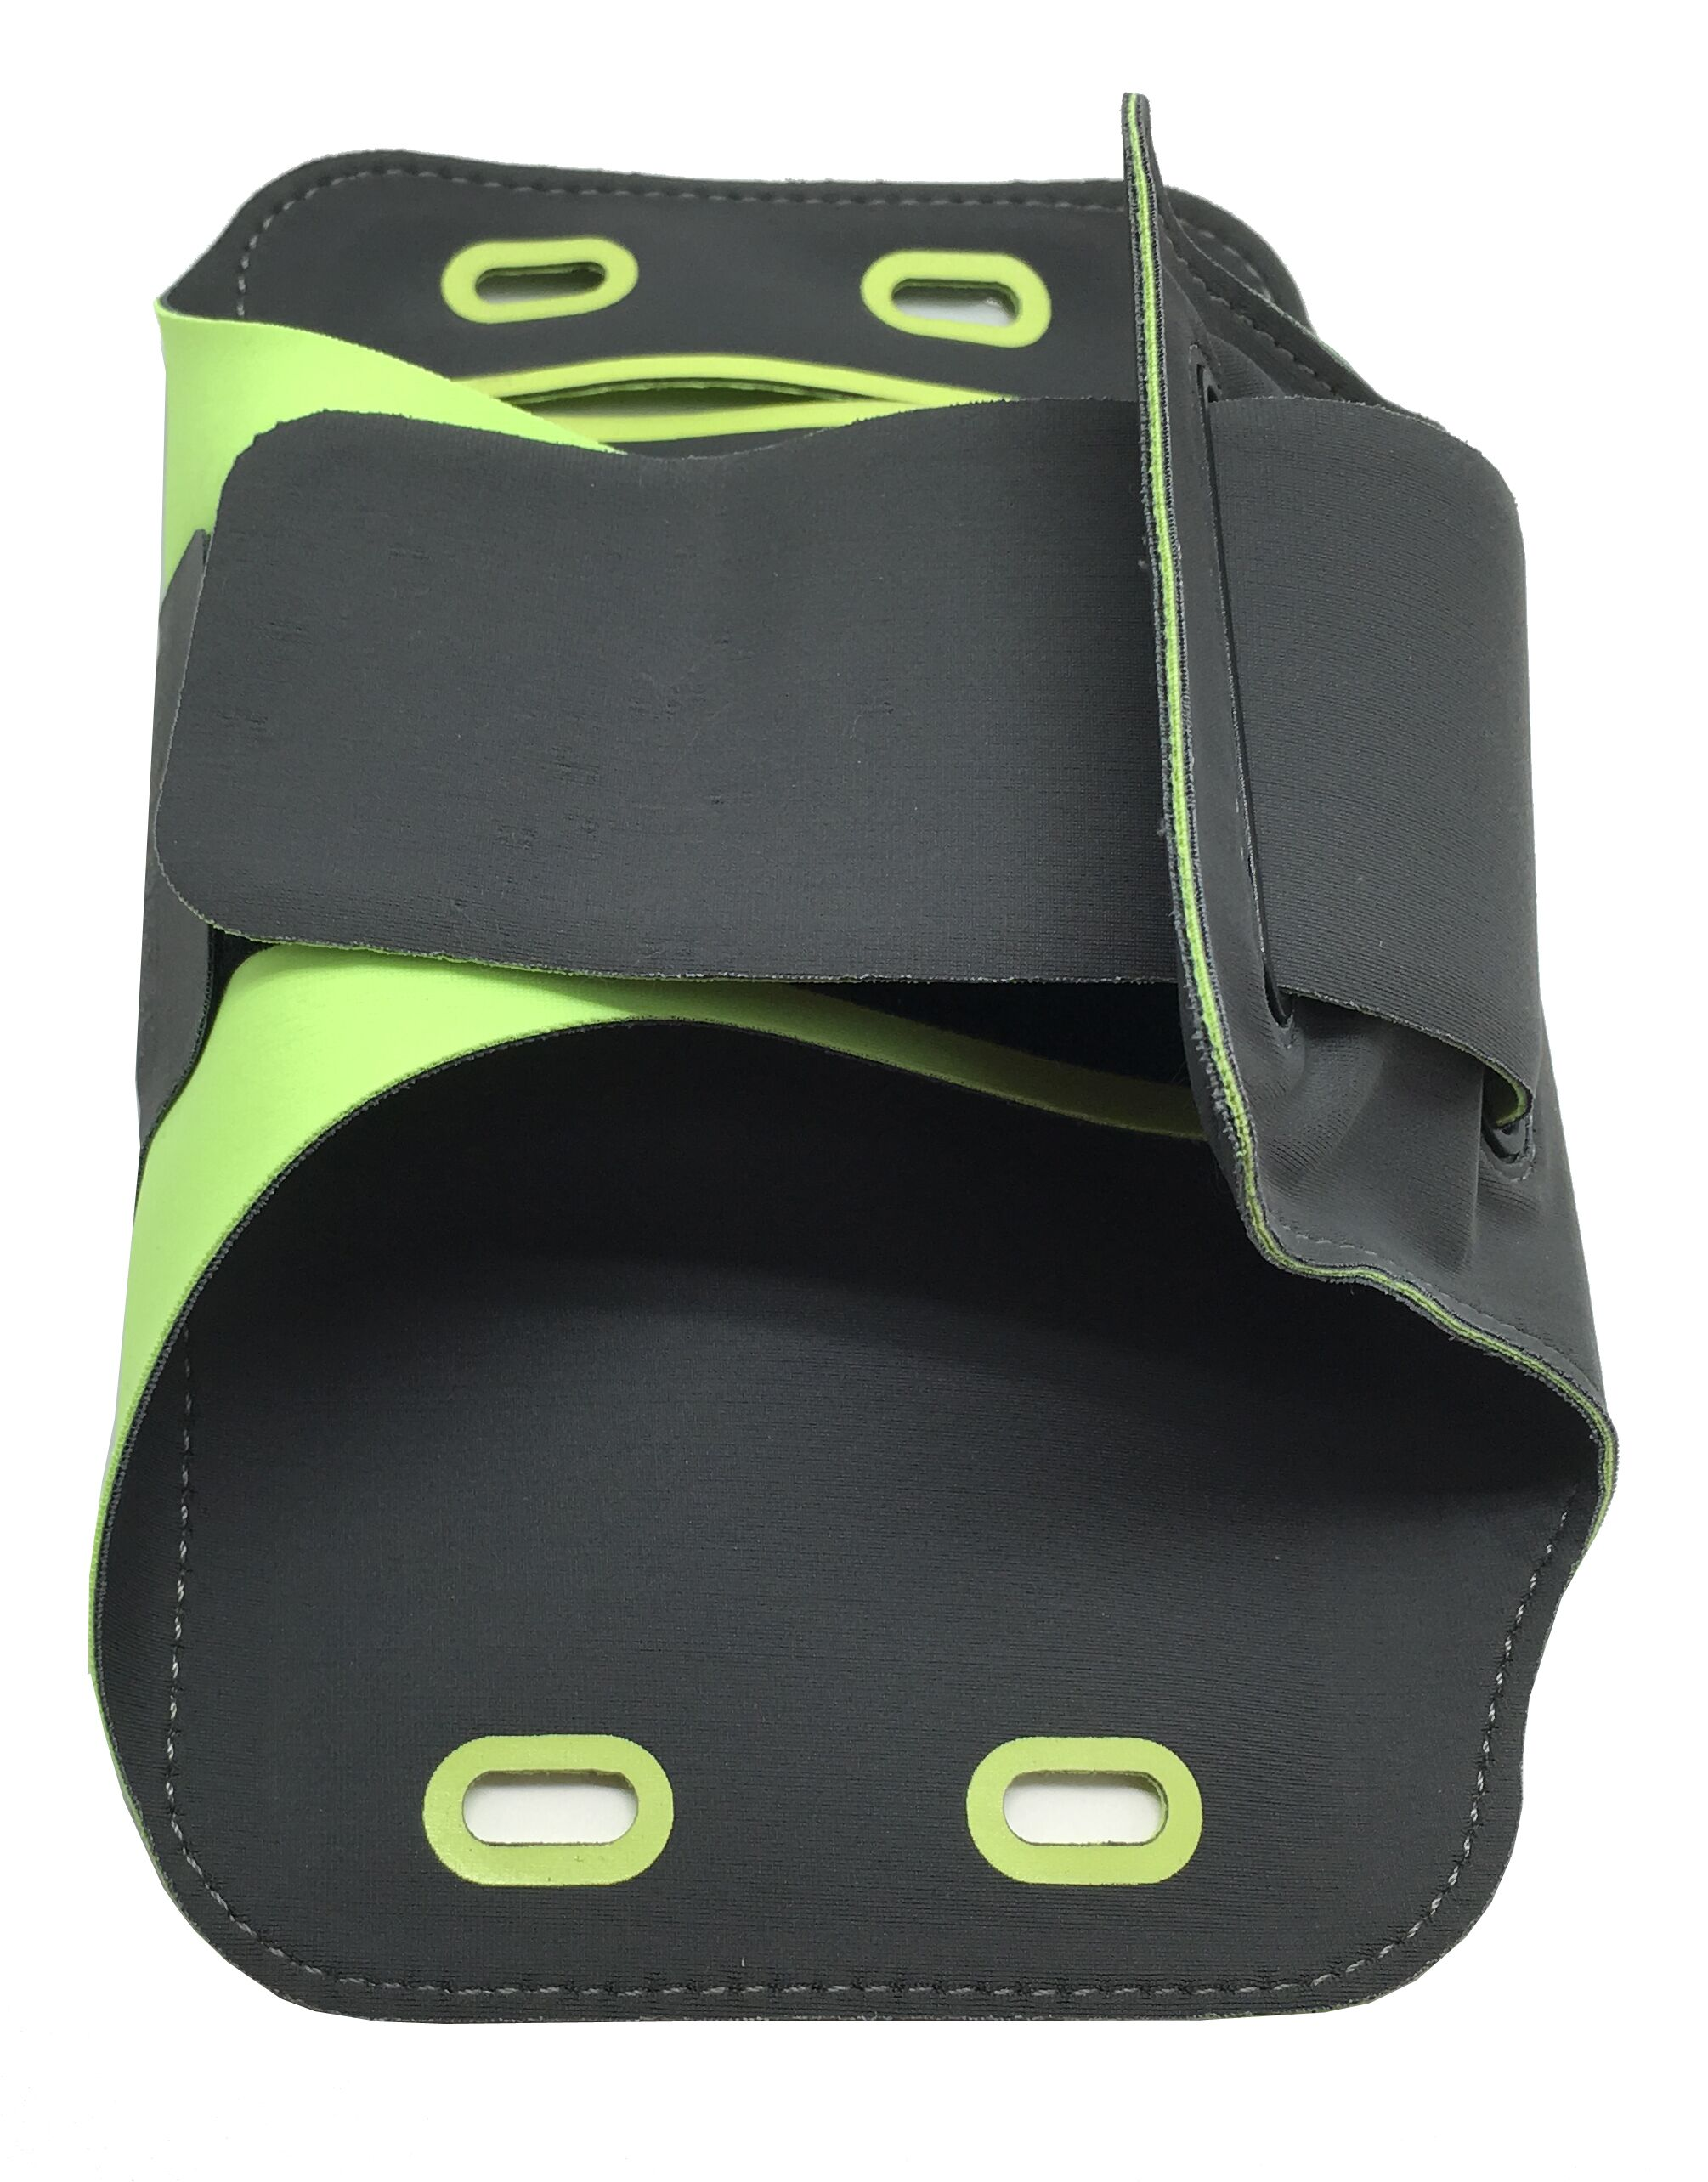 wholesale self-powered armband supplier